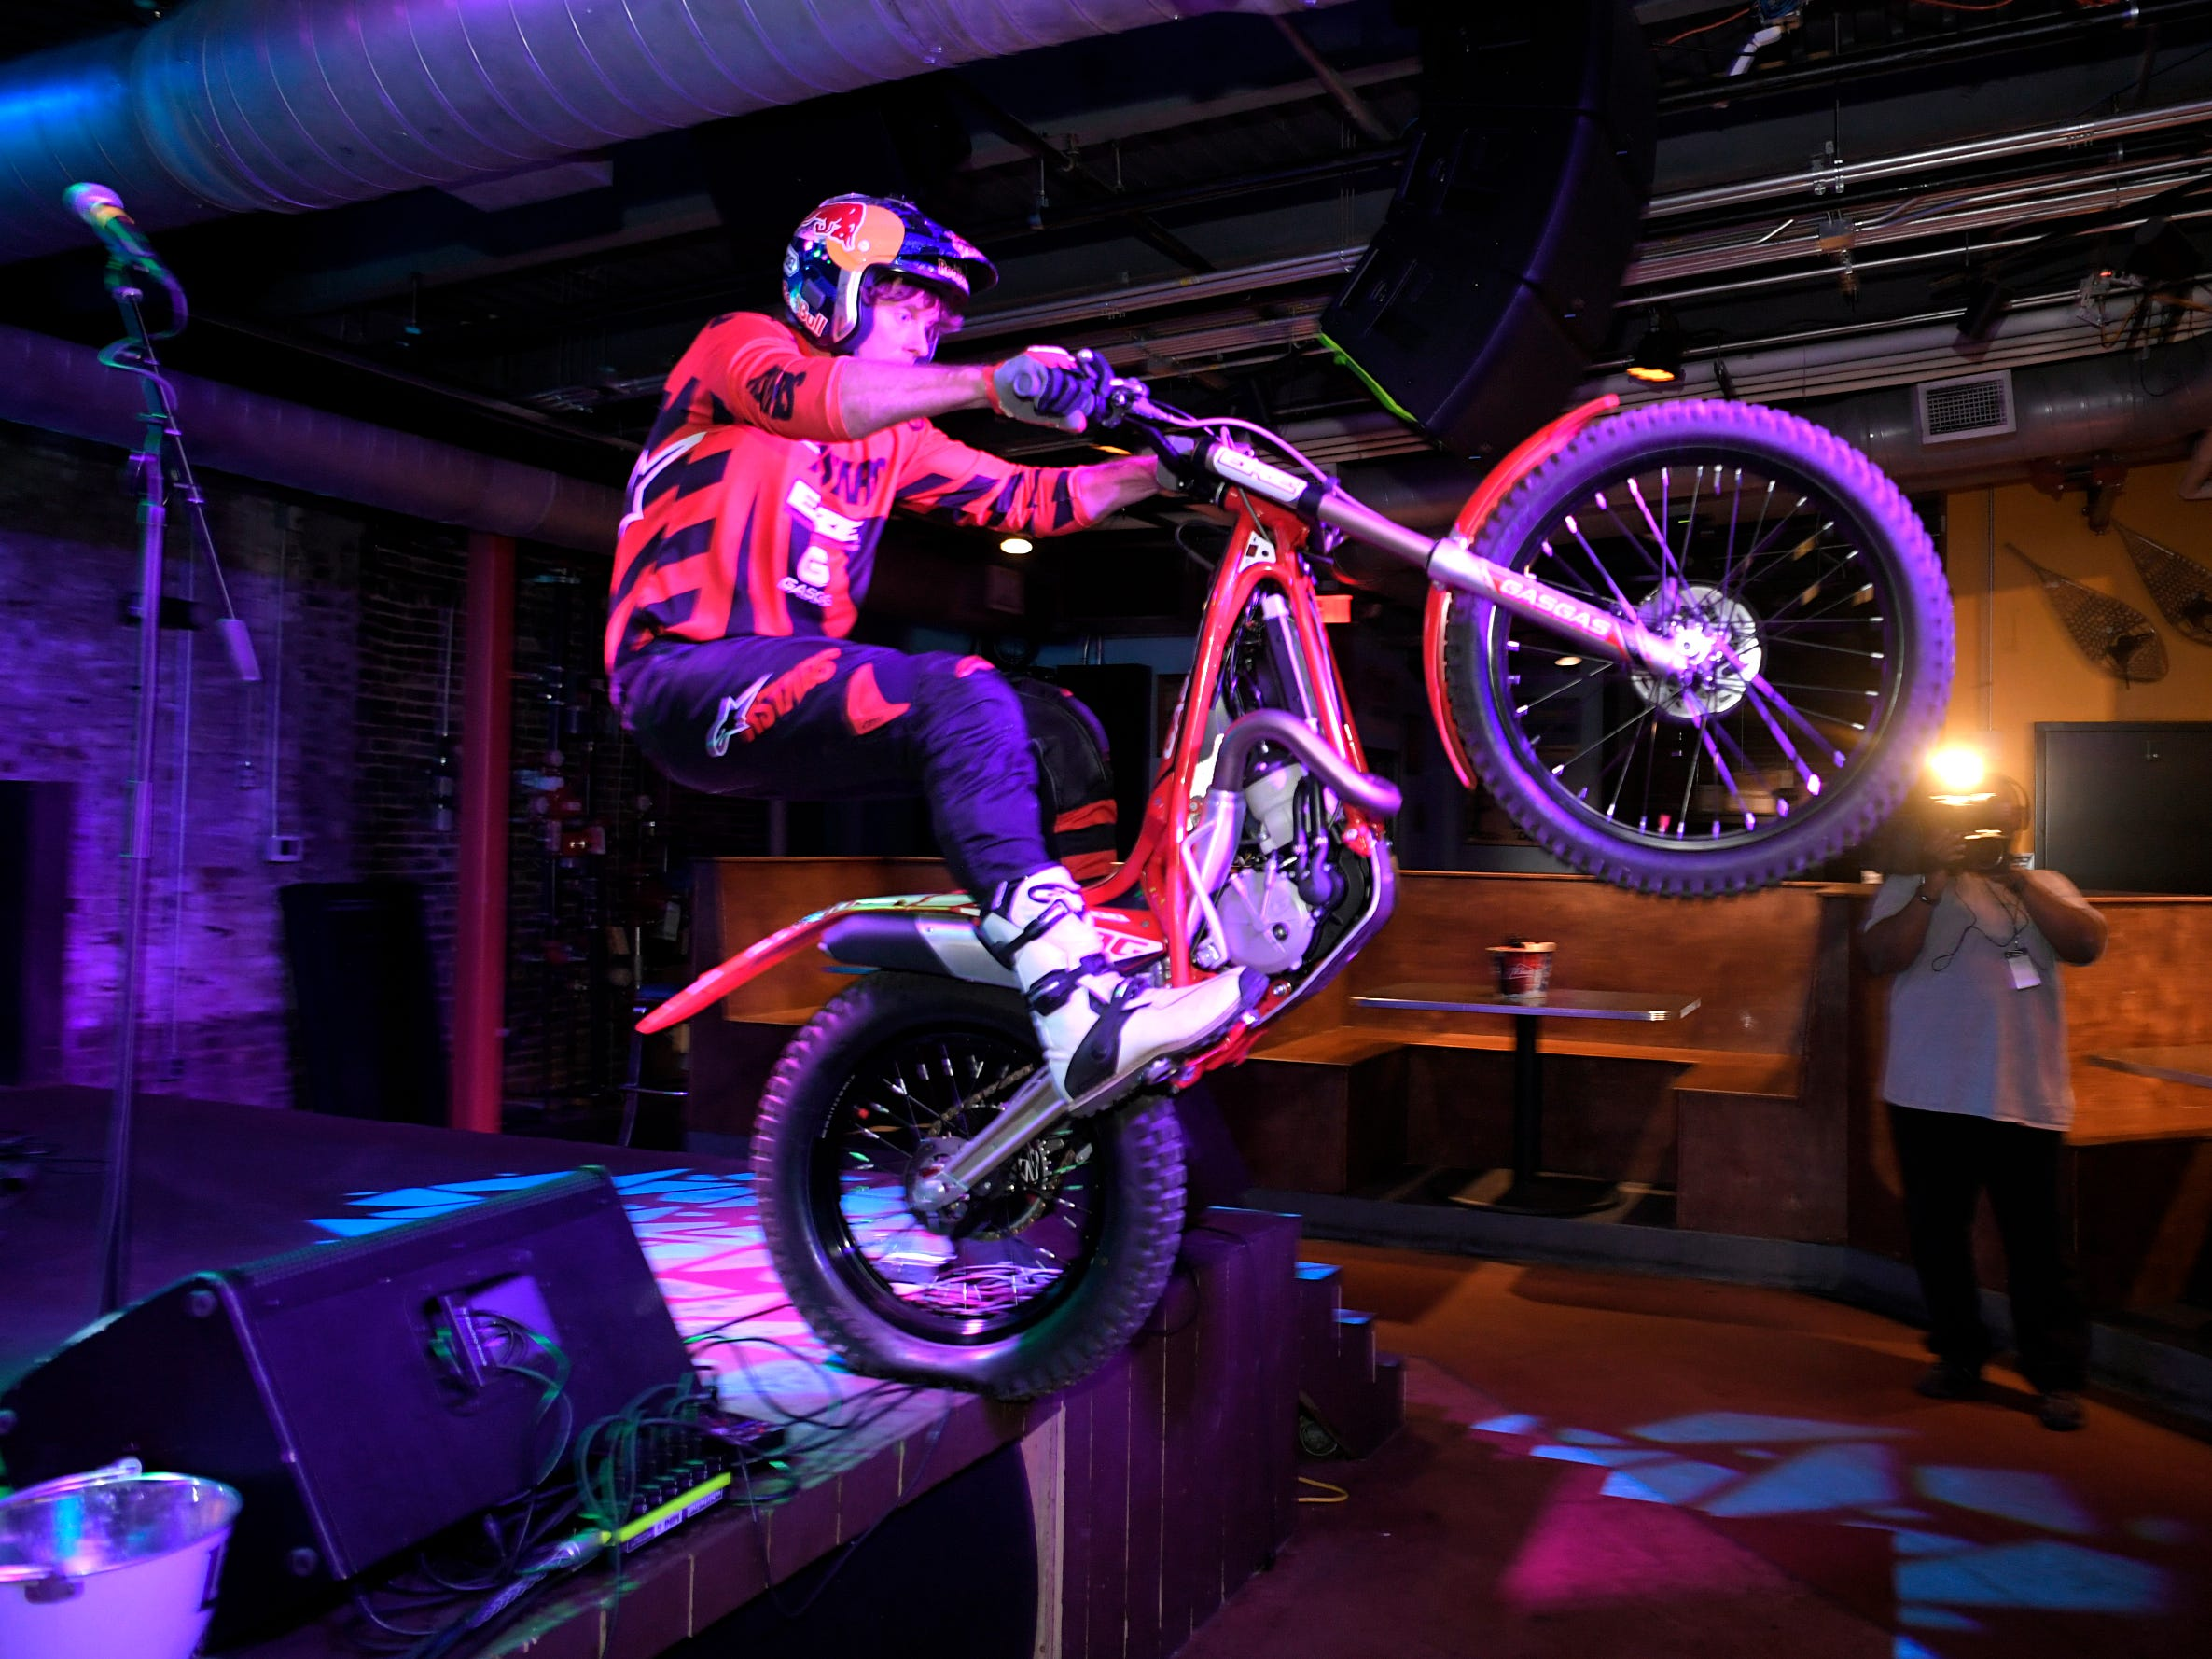 Trial motorcyclist Geoff Aaron performs stunts in the Tin Roof on Broadway on Thursday, April 4, 2019. The trials and endurocross legend is in town for the Motocross-Supercross event.